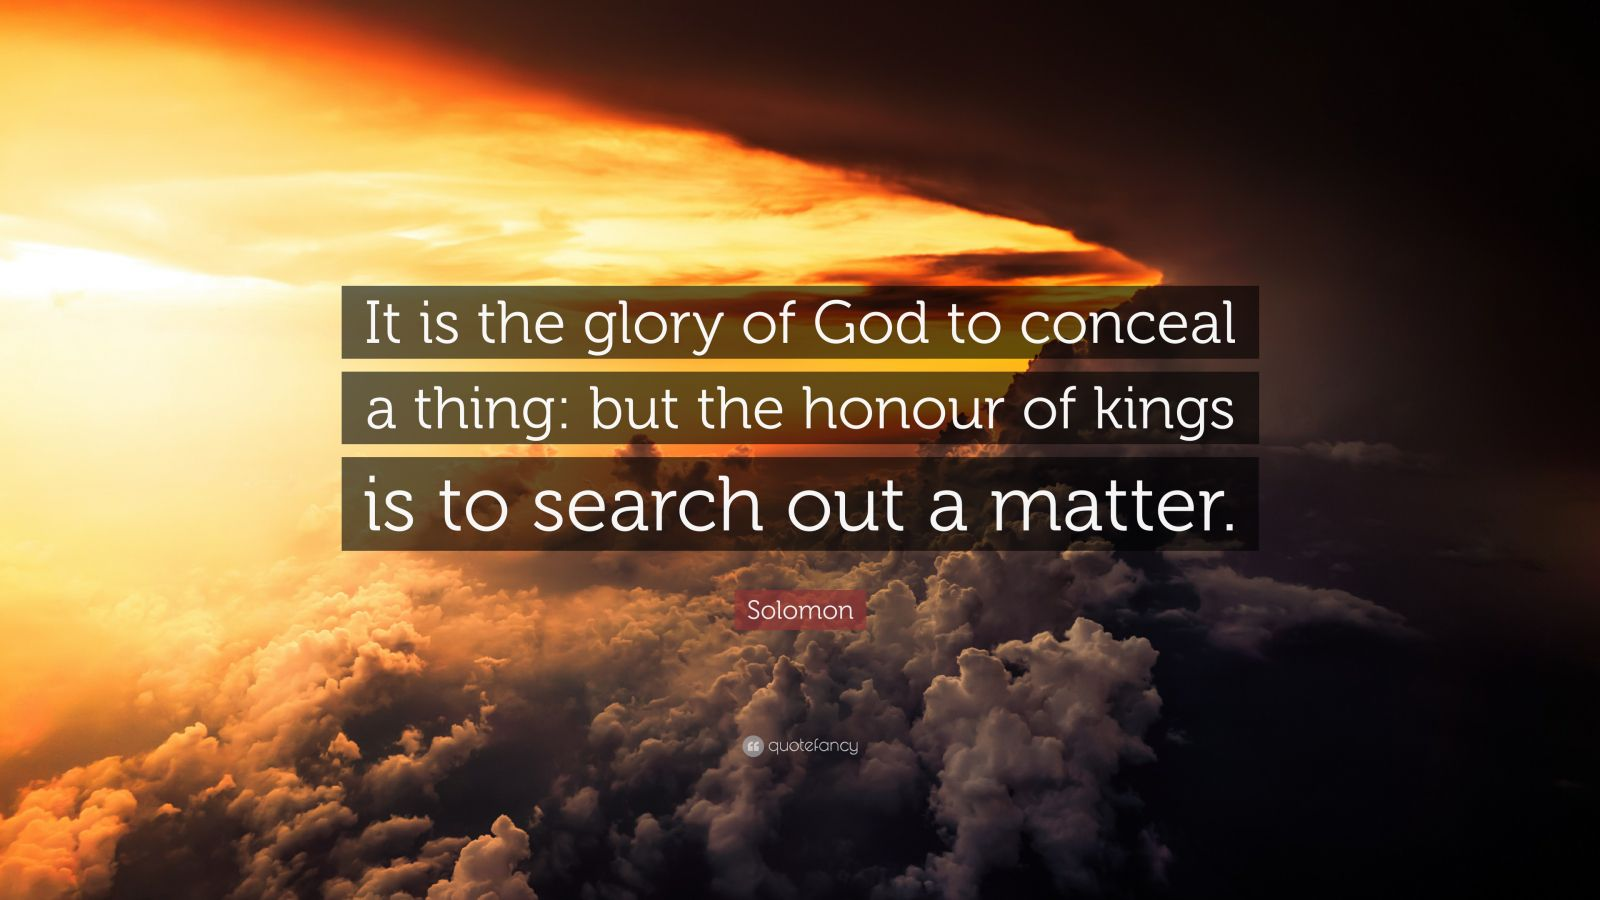 """Solomon Quote: """"It is the glory of God to conceal a thing: but the honour of kings is to search out a matter."""""""